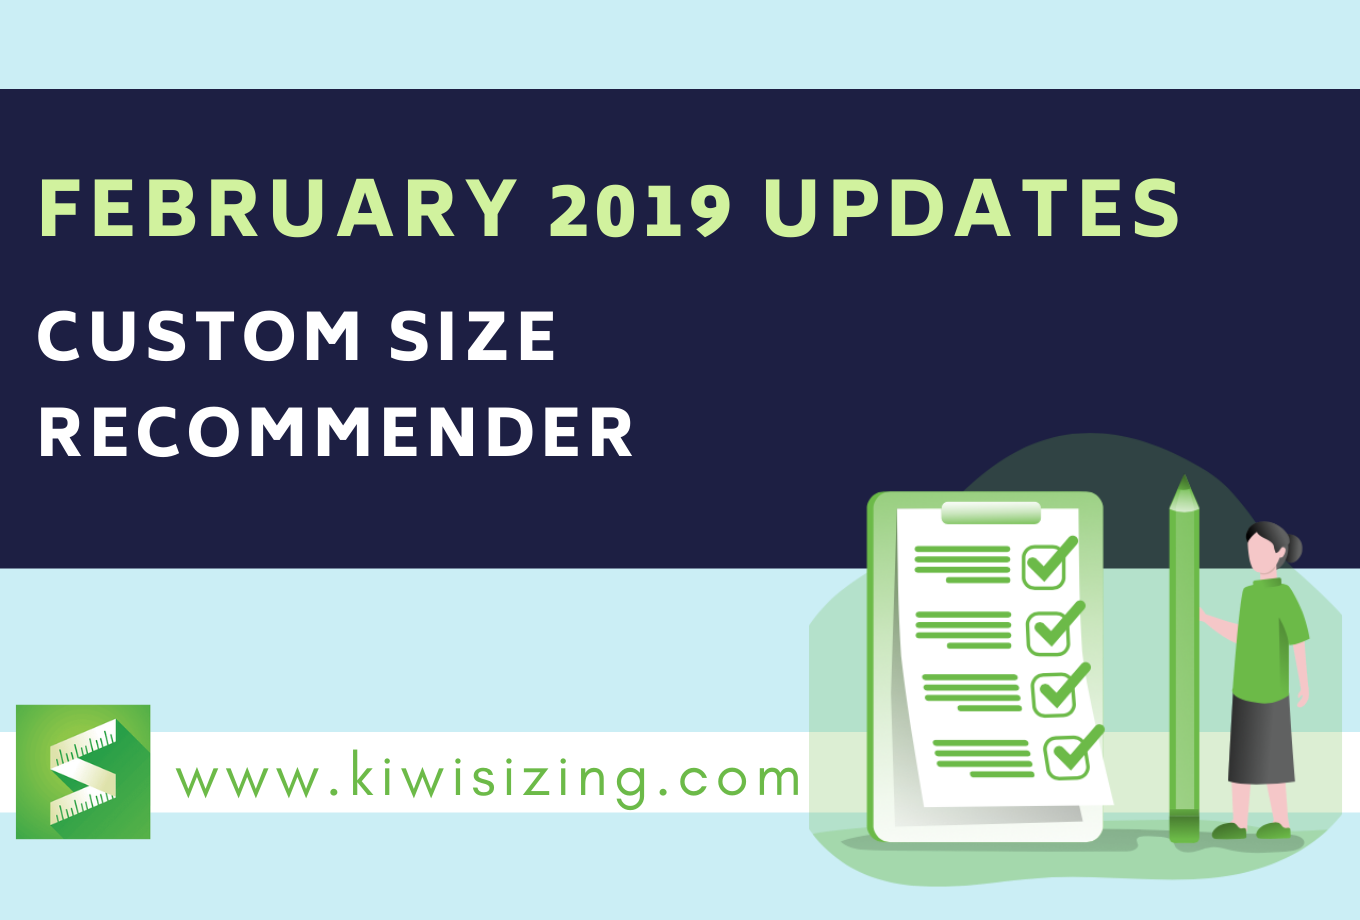 February 2019 Updates: Custom Size Recommender